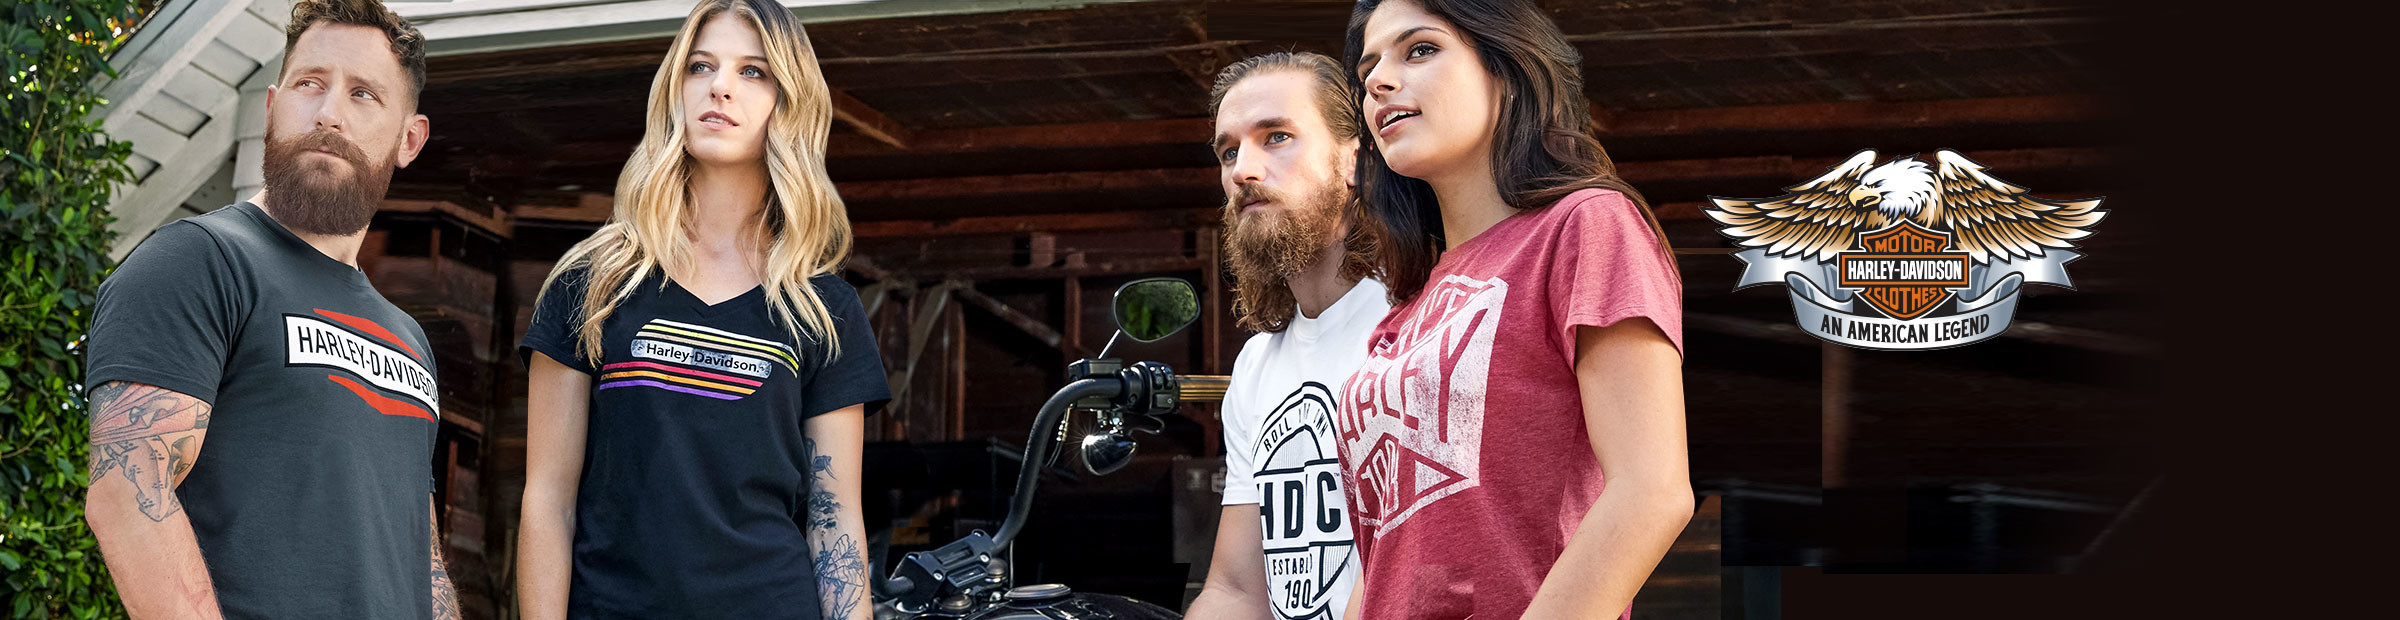 Harley-Davidson® riding gear and apparel